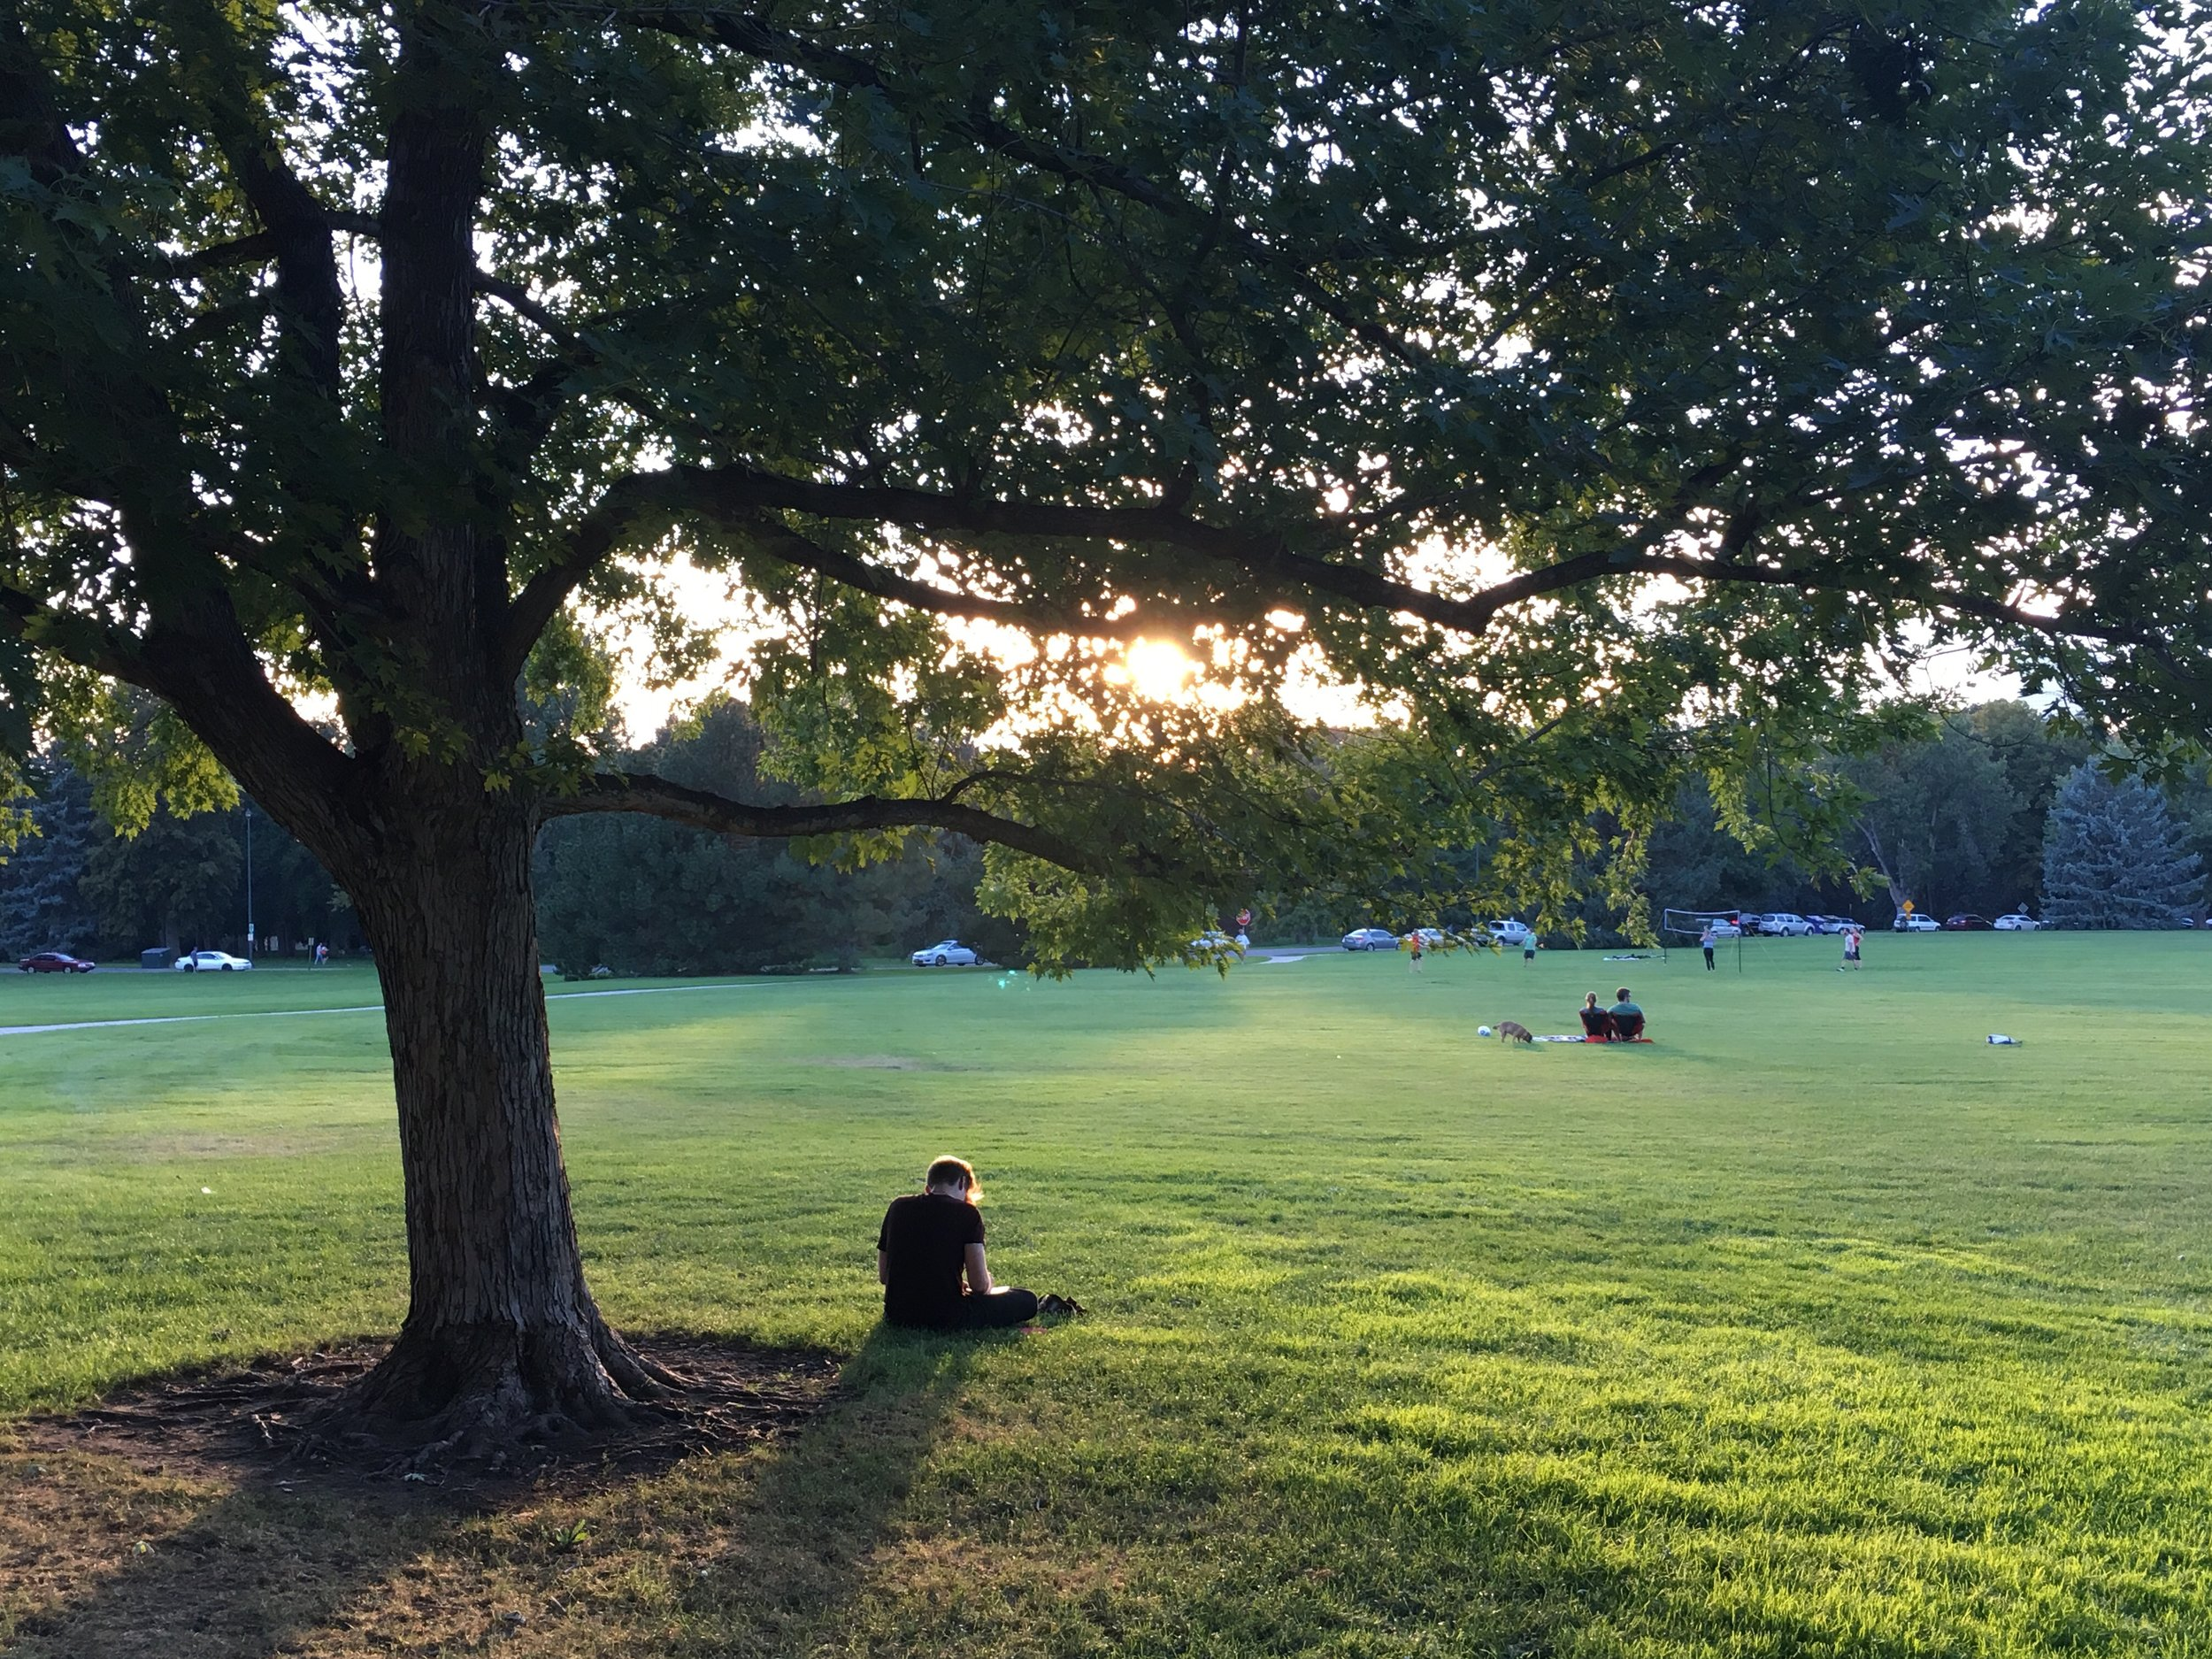 There's nothing like pondering life under a shady tree at sunset. Seriously, try it some time.